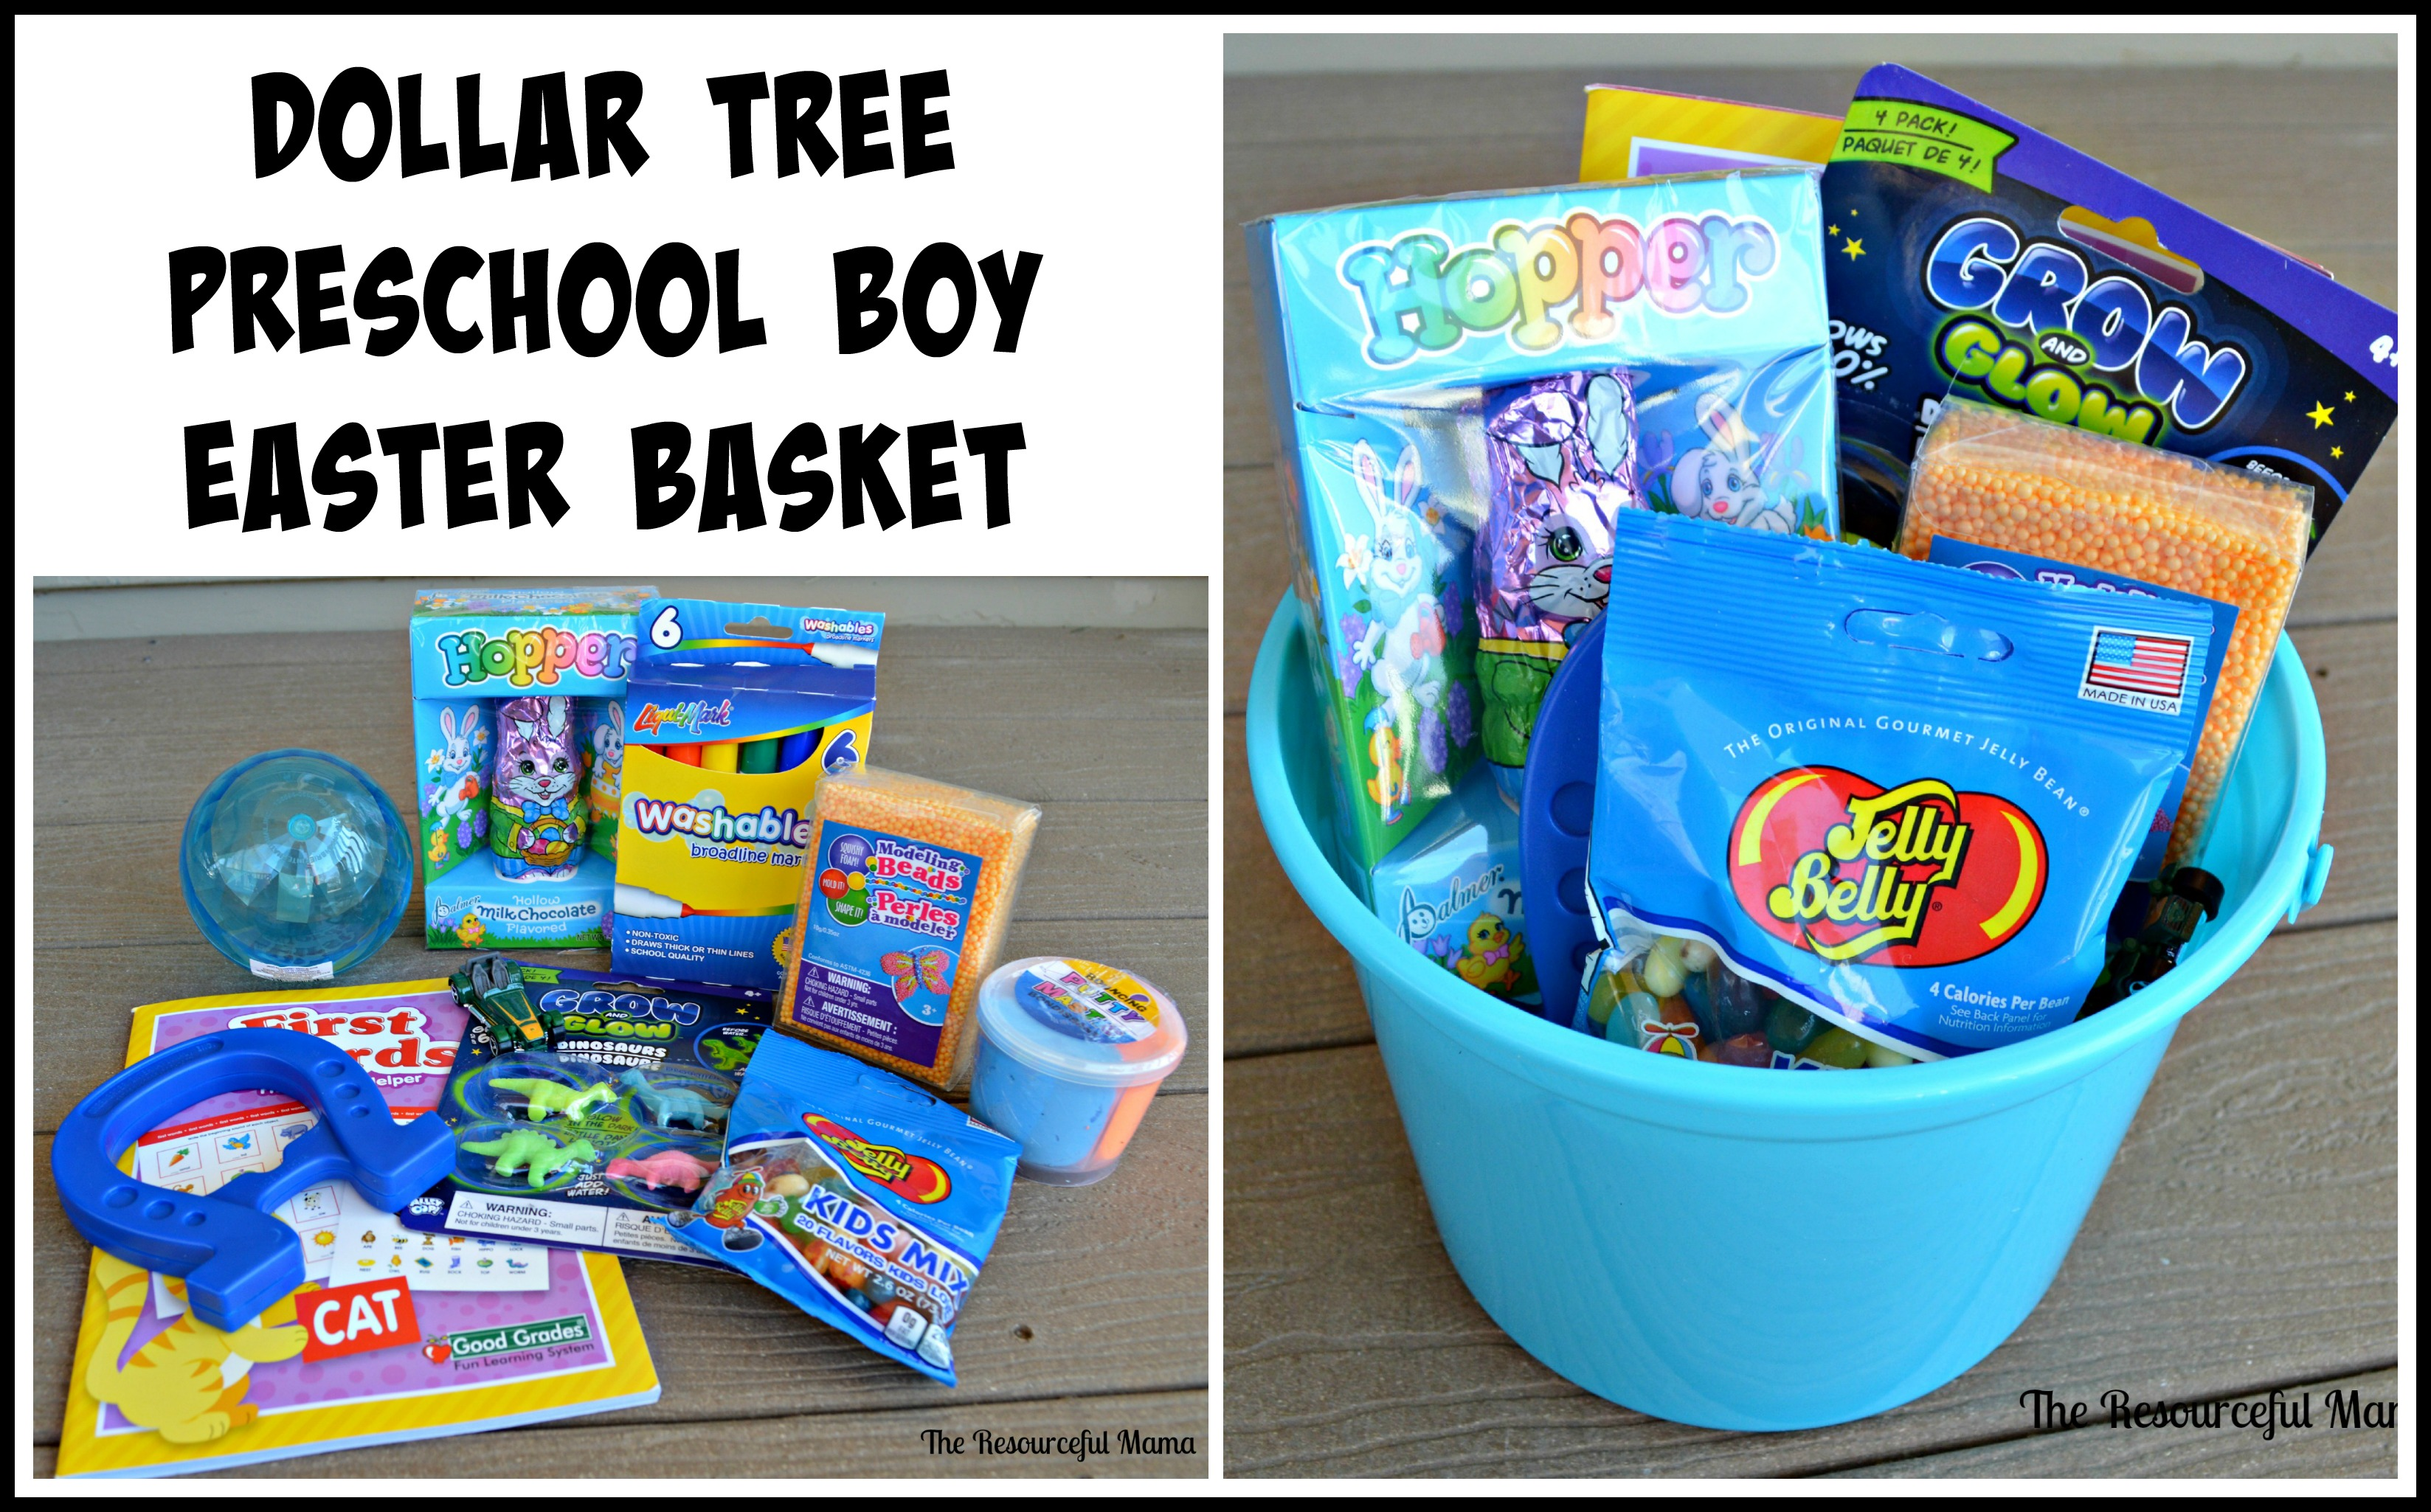 Dollar Tree Easter Basket For A Preschool Boy